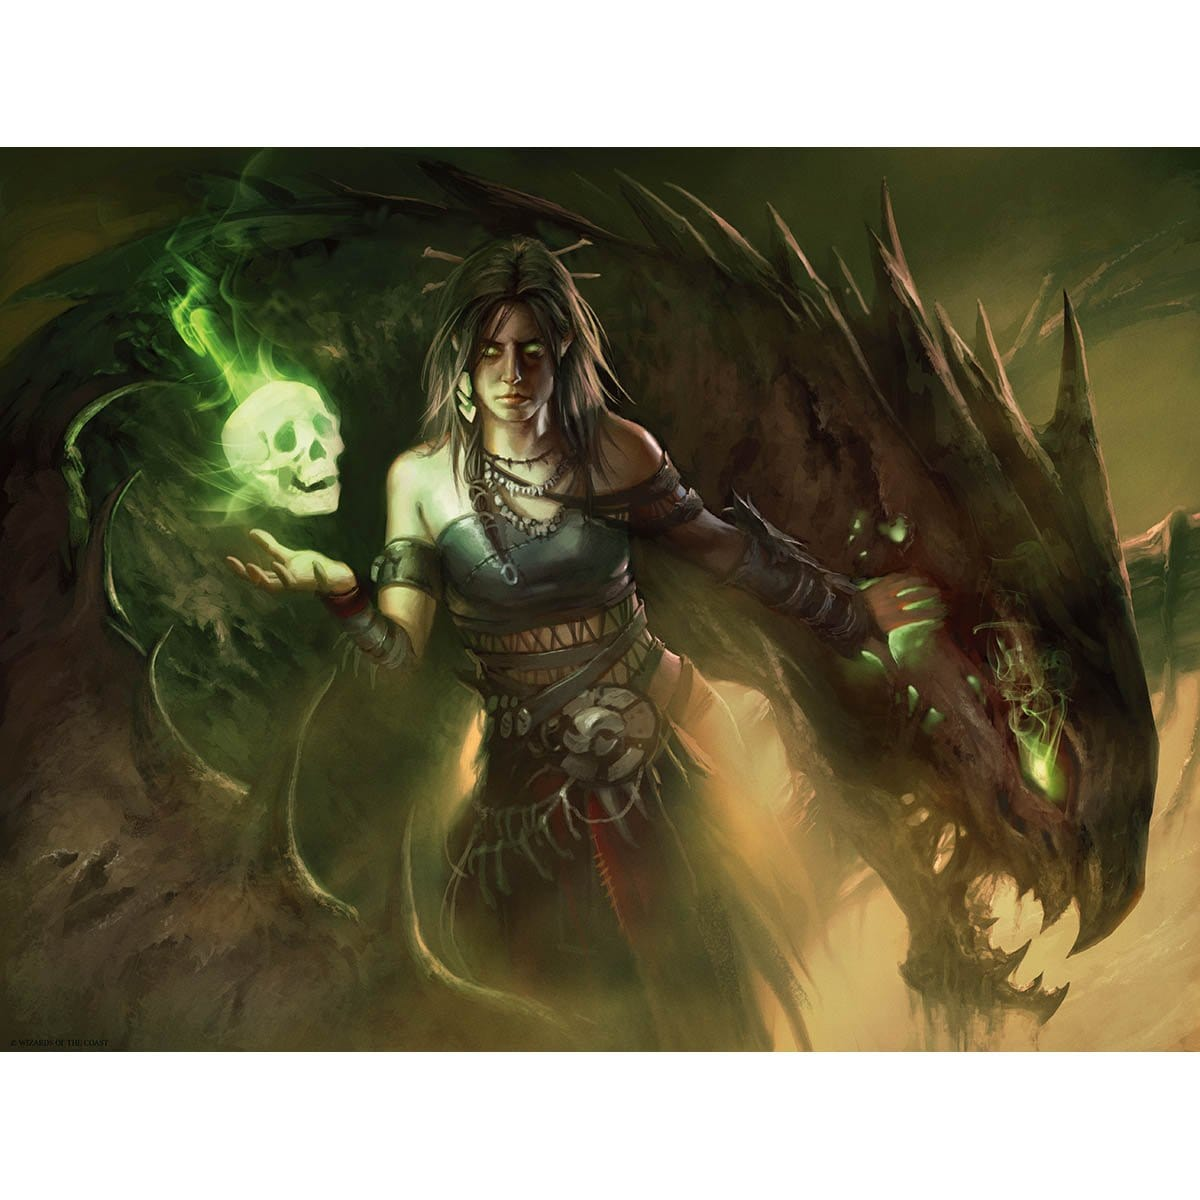 Meren of Clan Nel Toth Print - Print - Original Magic Art - Accessories for Magic the Gathering and other card games